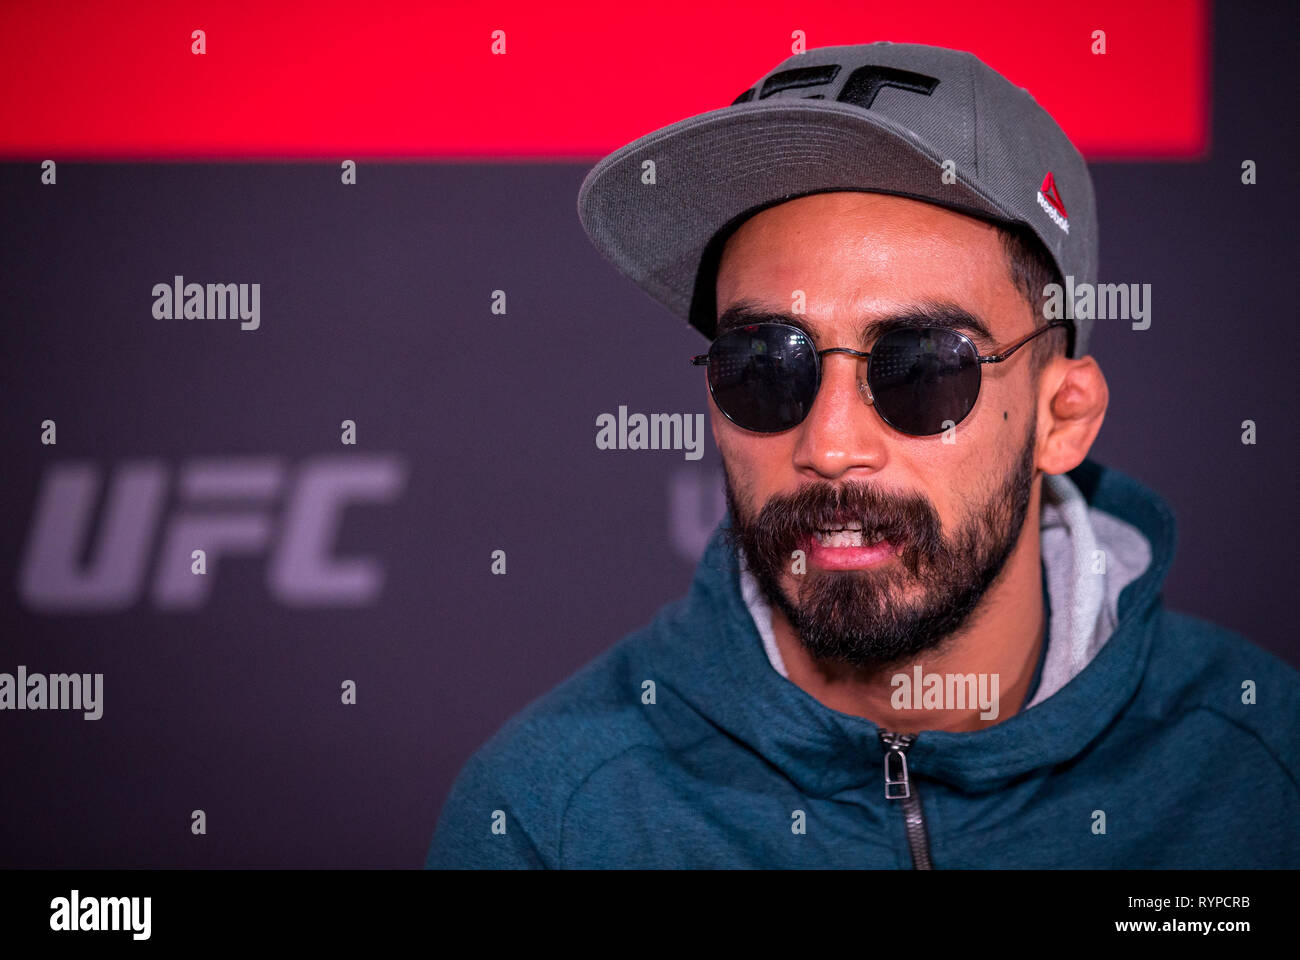 London, UK. 14th Mar, 2019. Jose Quinonez (Mexico) - UFC bantamweight during the UFC Fight Night 147 Ultimate Media Day at Glaziers Hall, 9 Montague Cl, London, SE1 9DD, England on 14 March 2019. Photo by Andy Rowland. Credit: Andrew Rowland/Alamy Live News Stock Photo